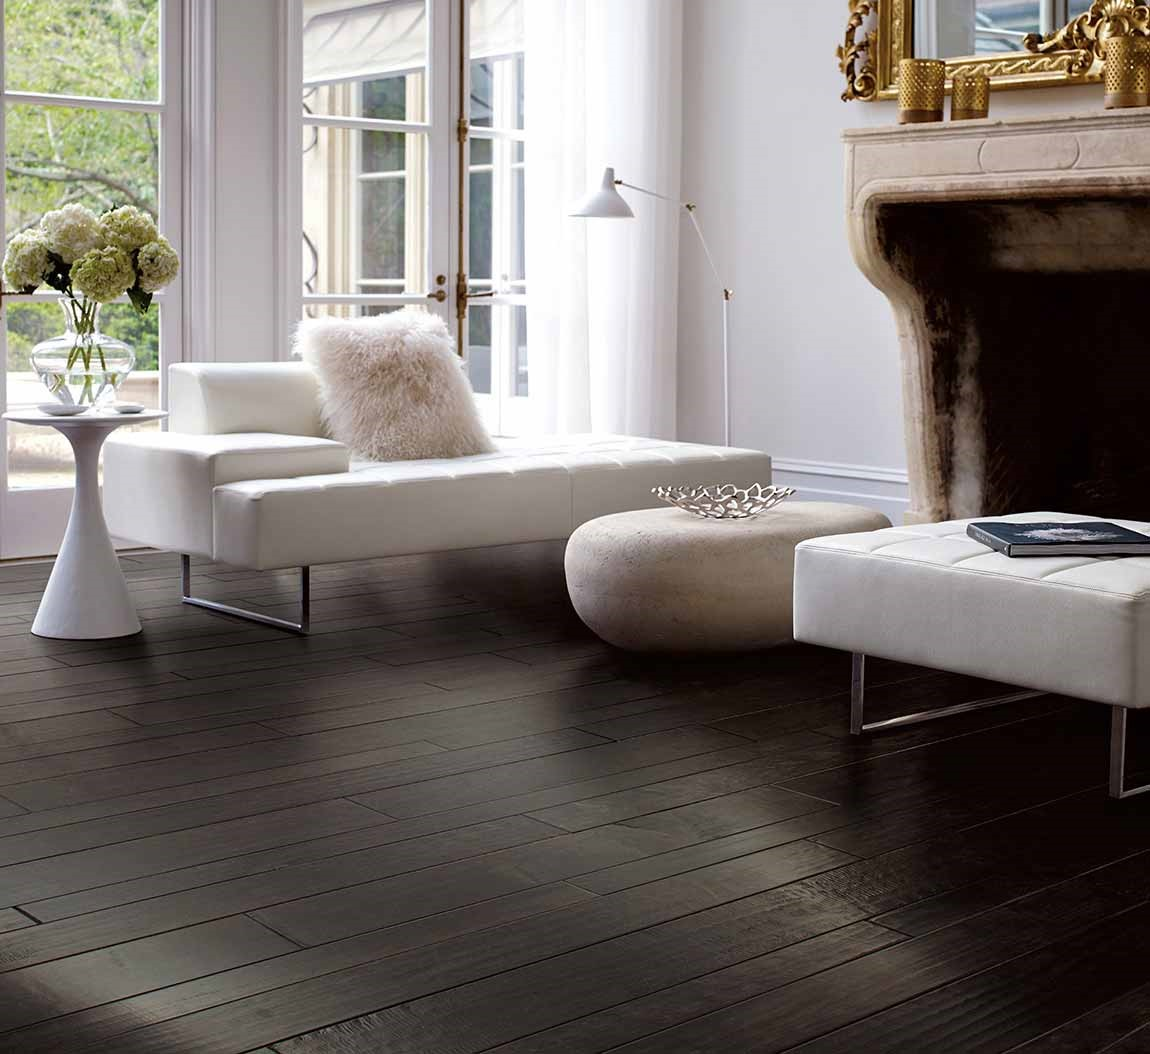 dark hardwood floor in modern living room with white couch